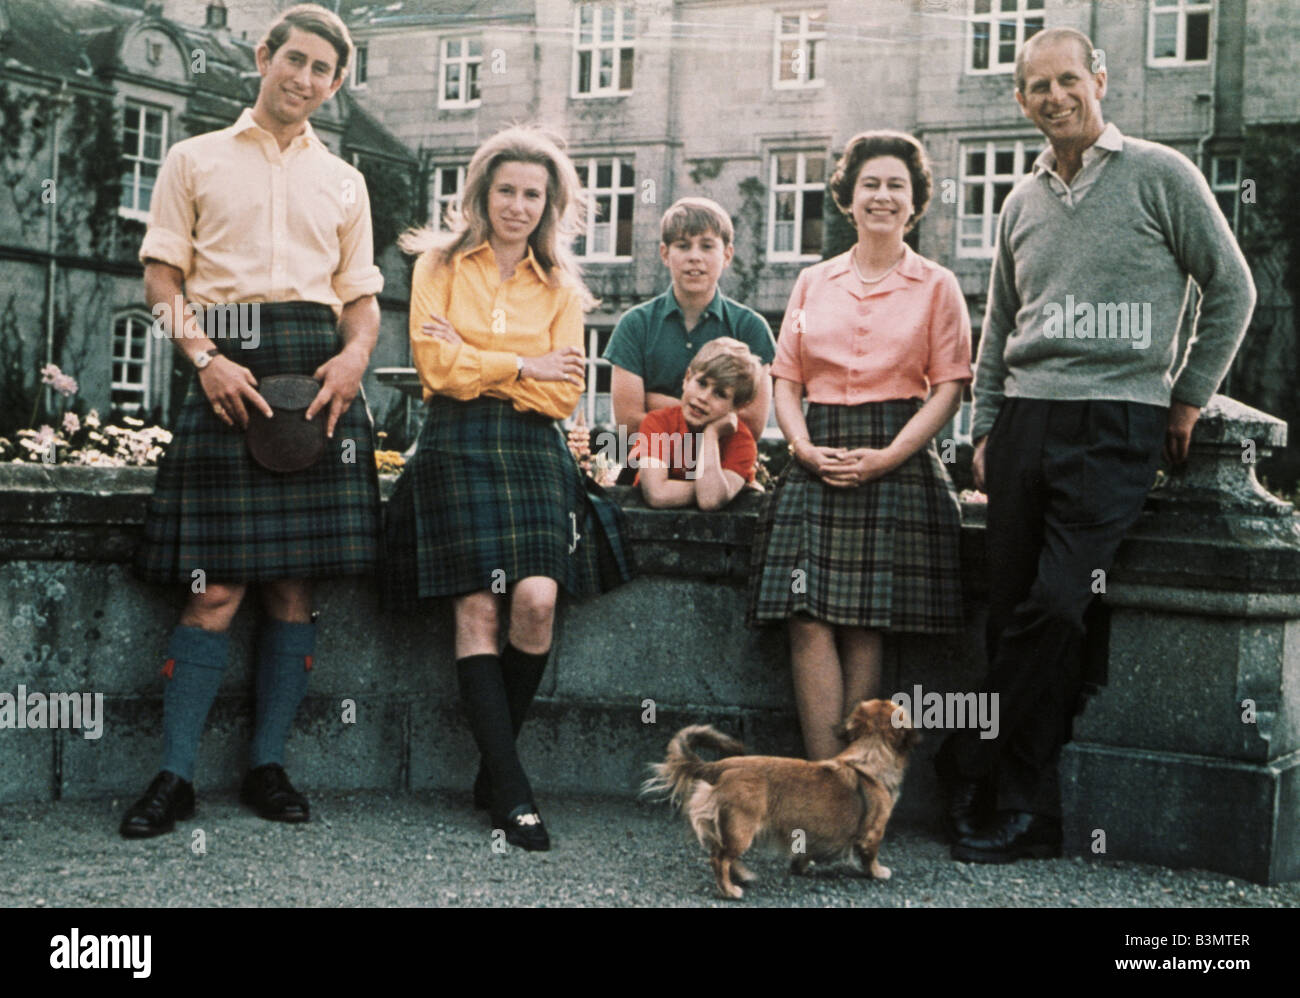 QUEEN ELIZABETH II at Balmoral with Prince Charles,Princess Anne, Prince Edward, Prince Andrew and Prince Phillip - Stock Image